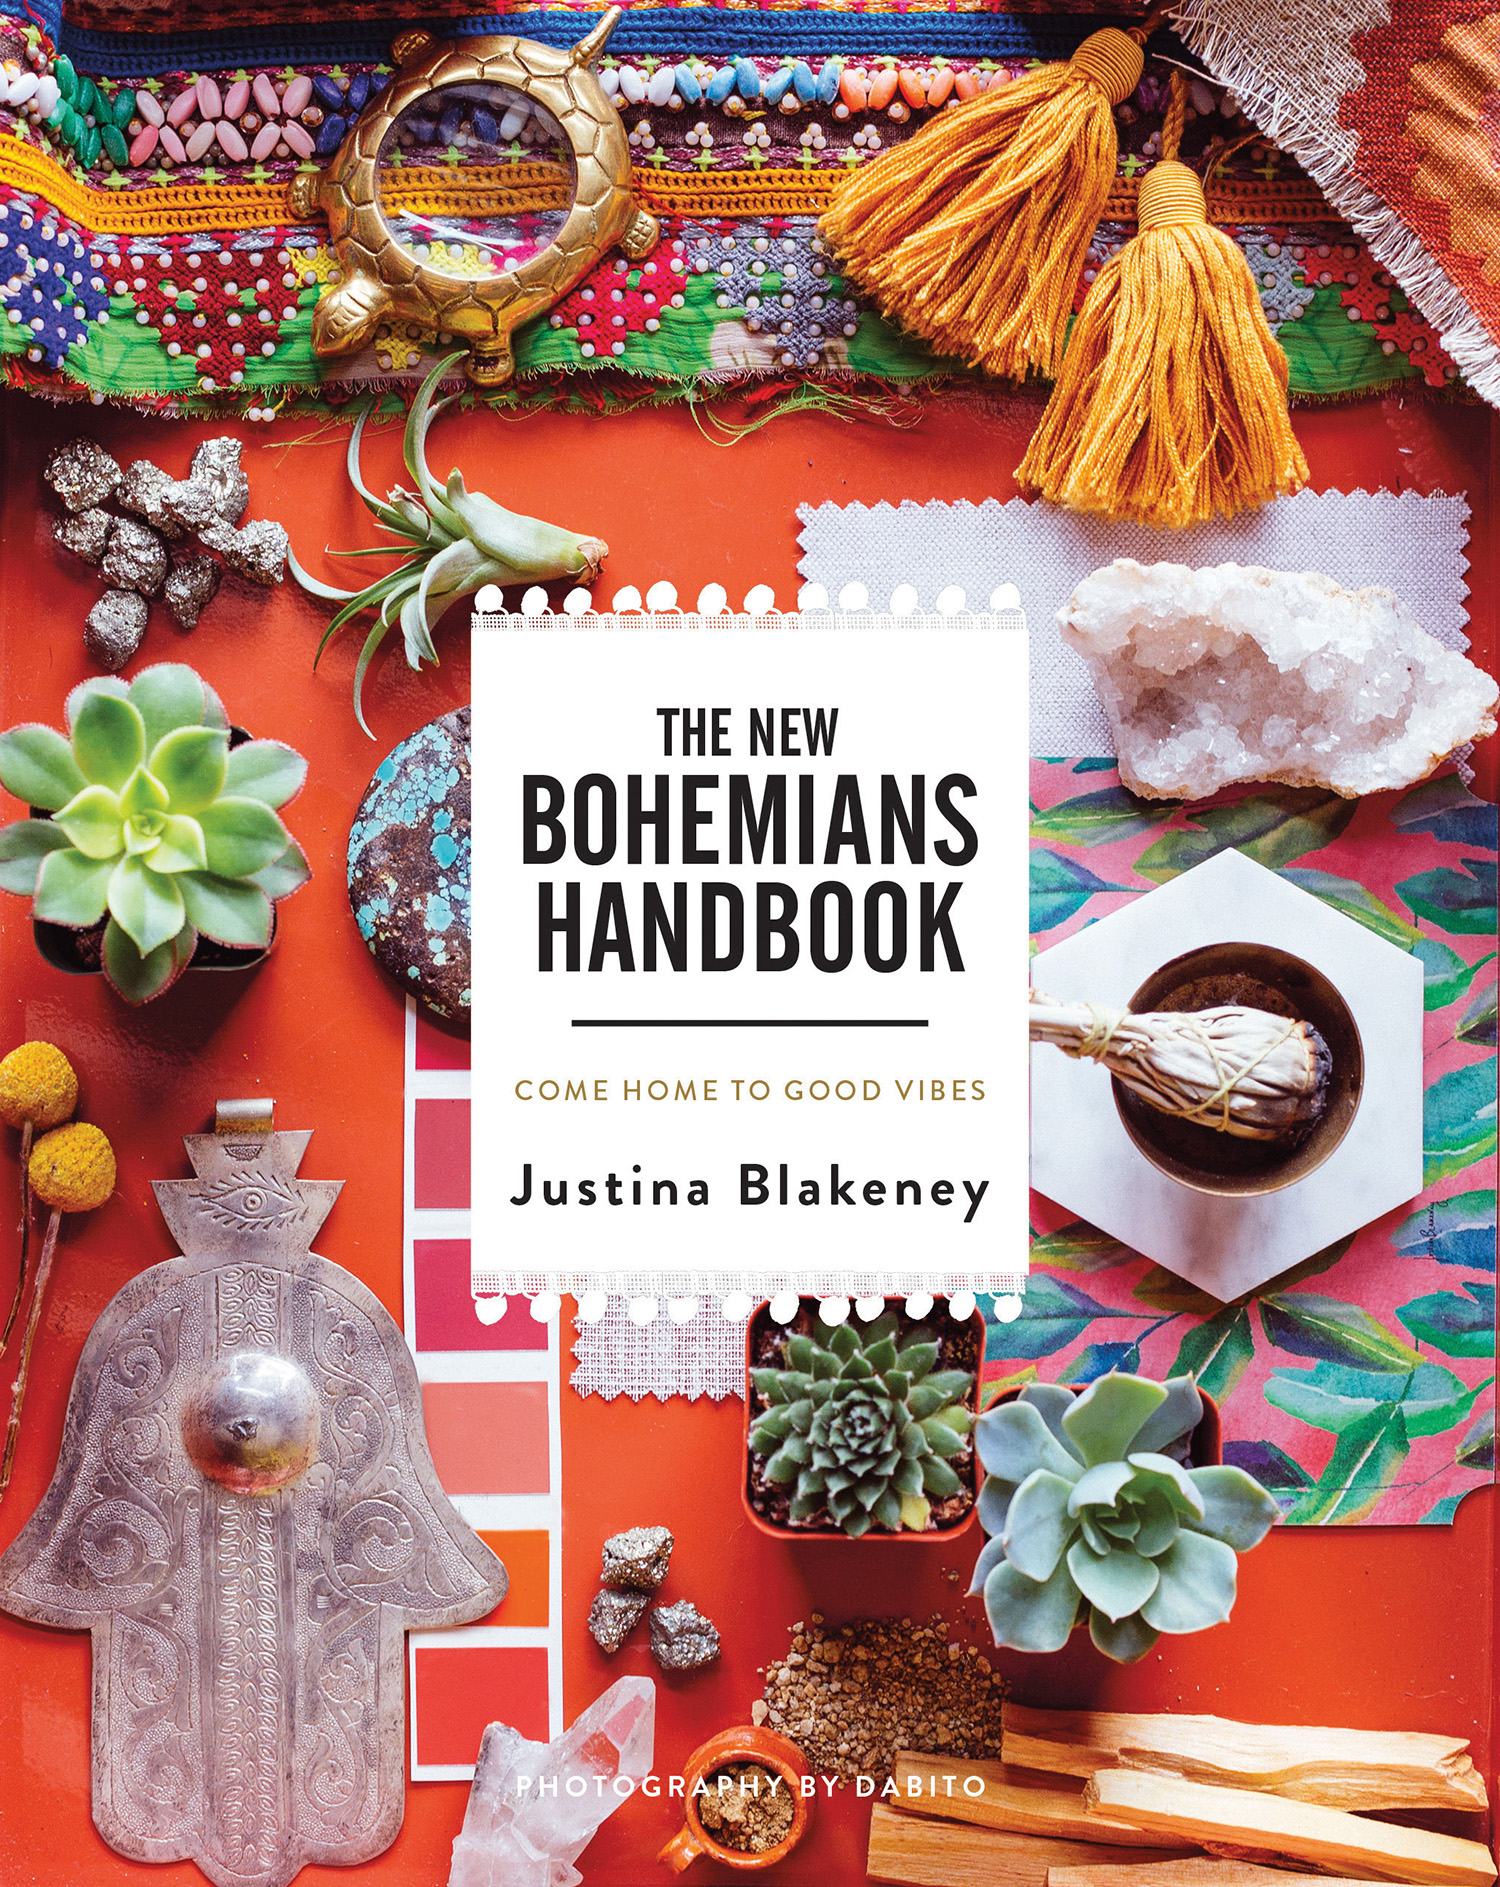 Pre-Order The New Bohemians Handbook • Come Home to Good Vibes